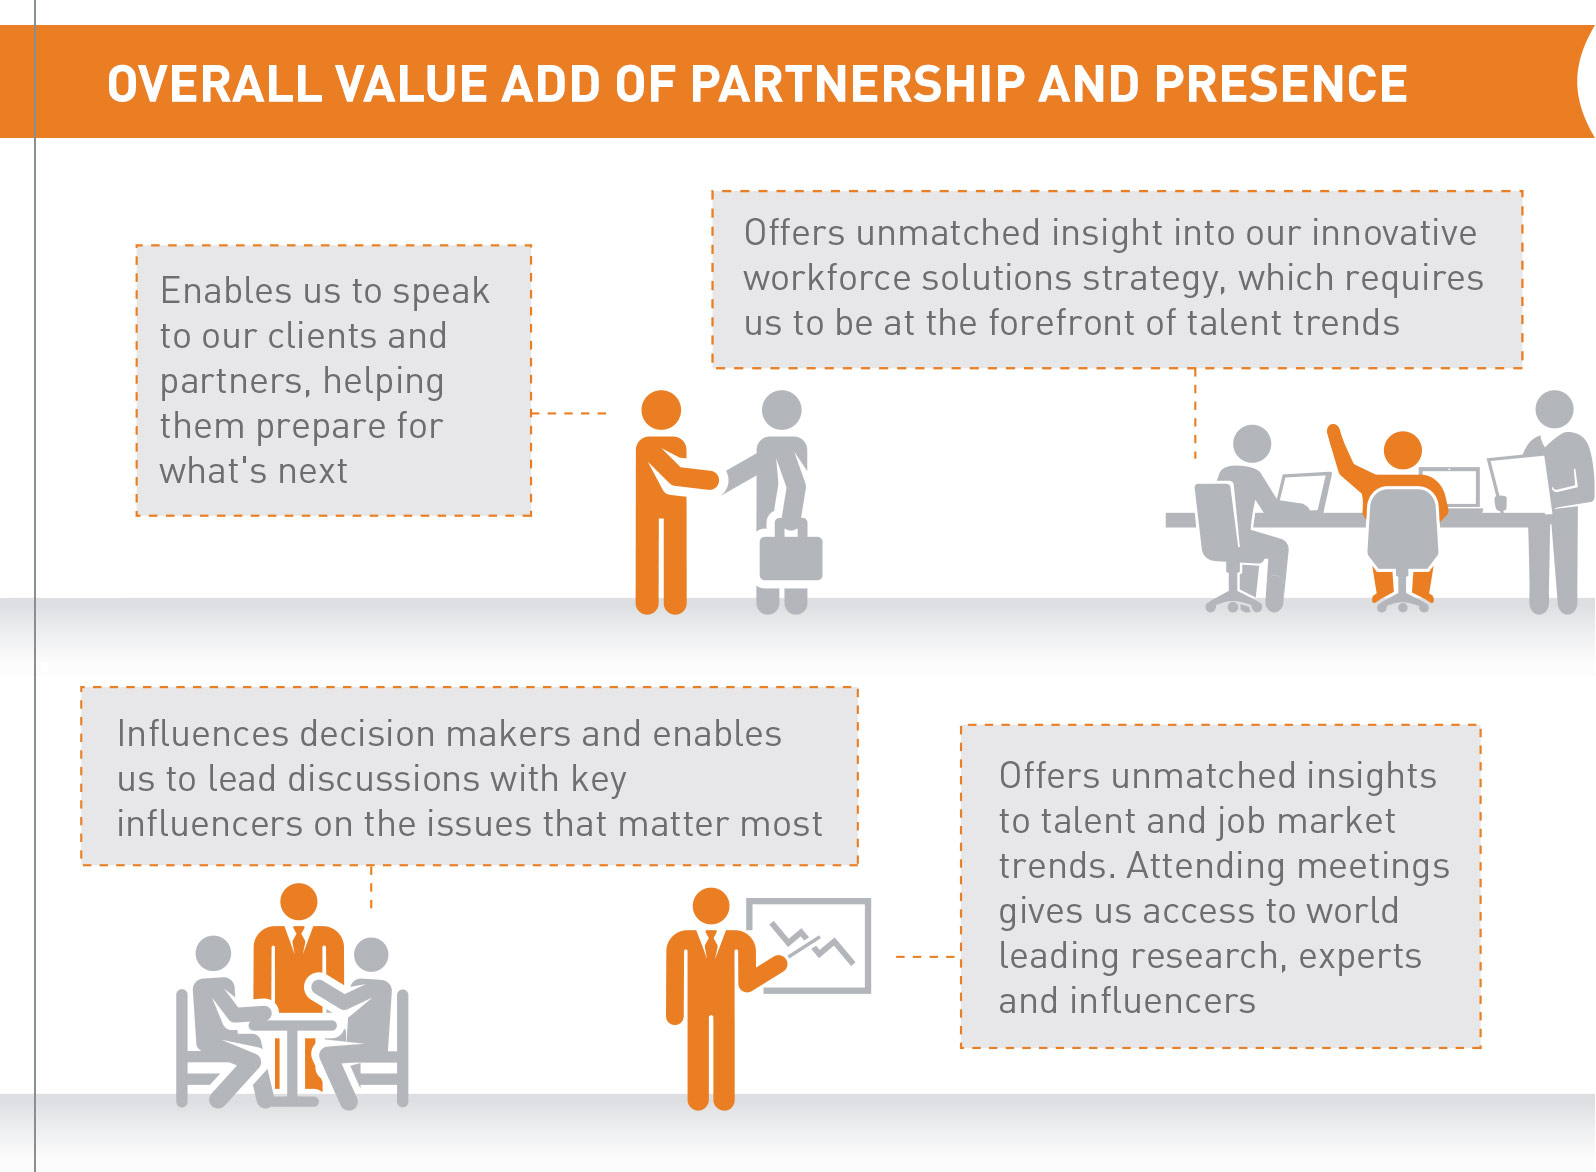 Overall Value Add of Partnership and Presence